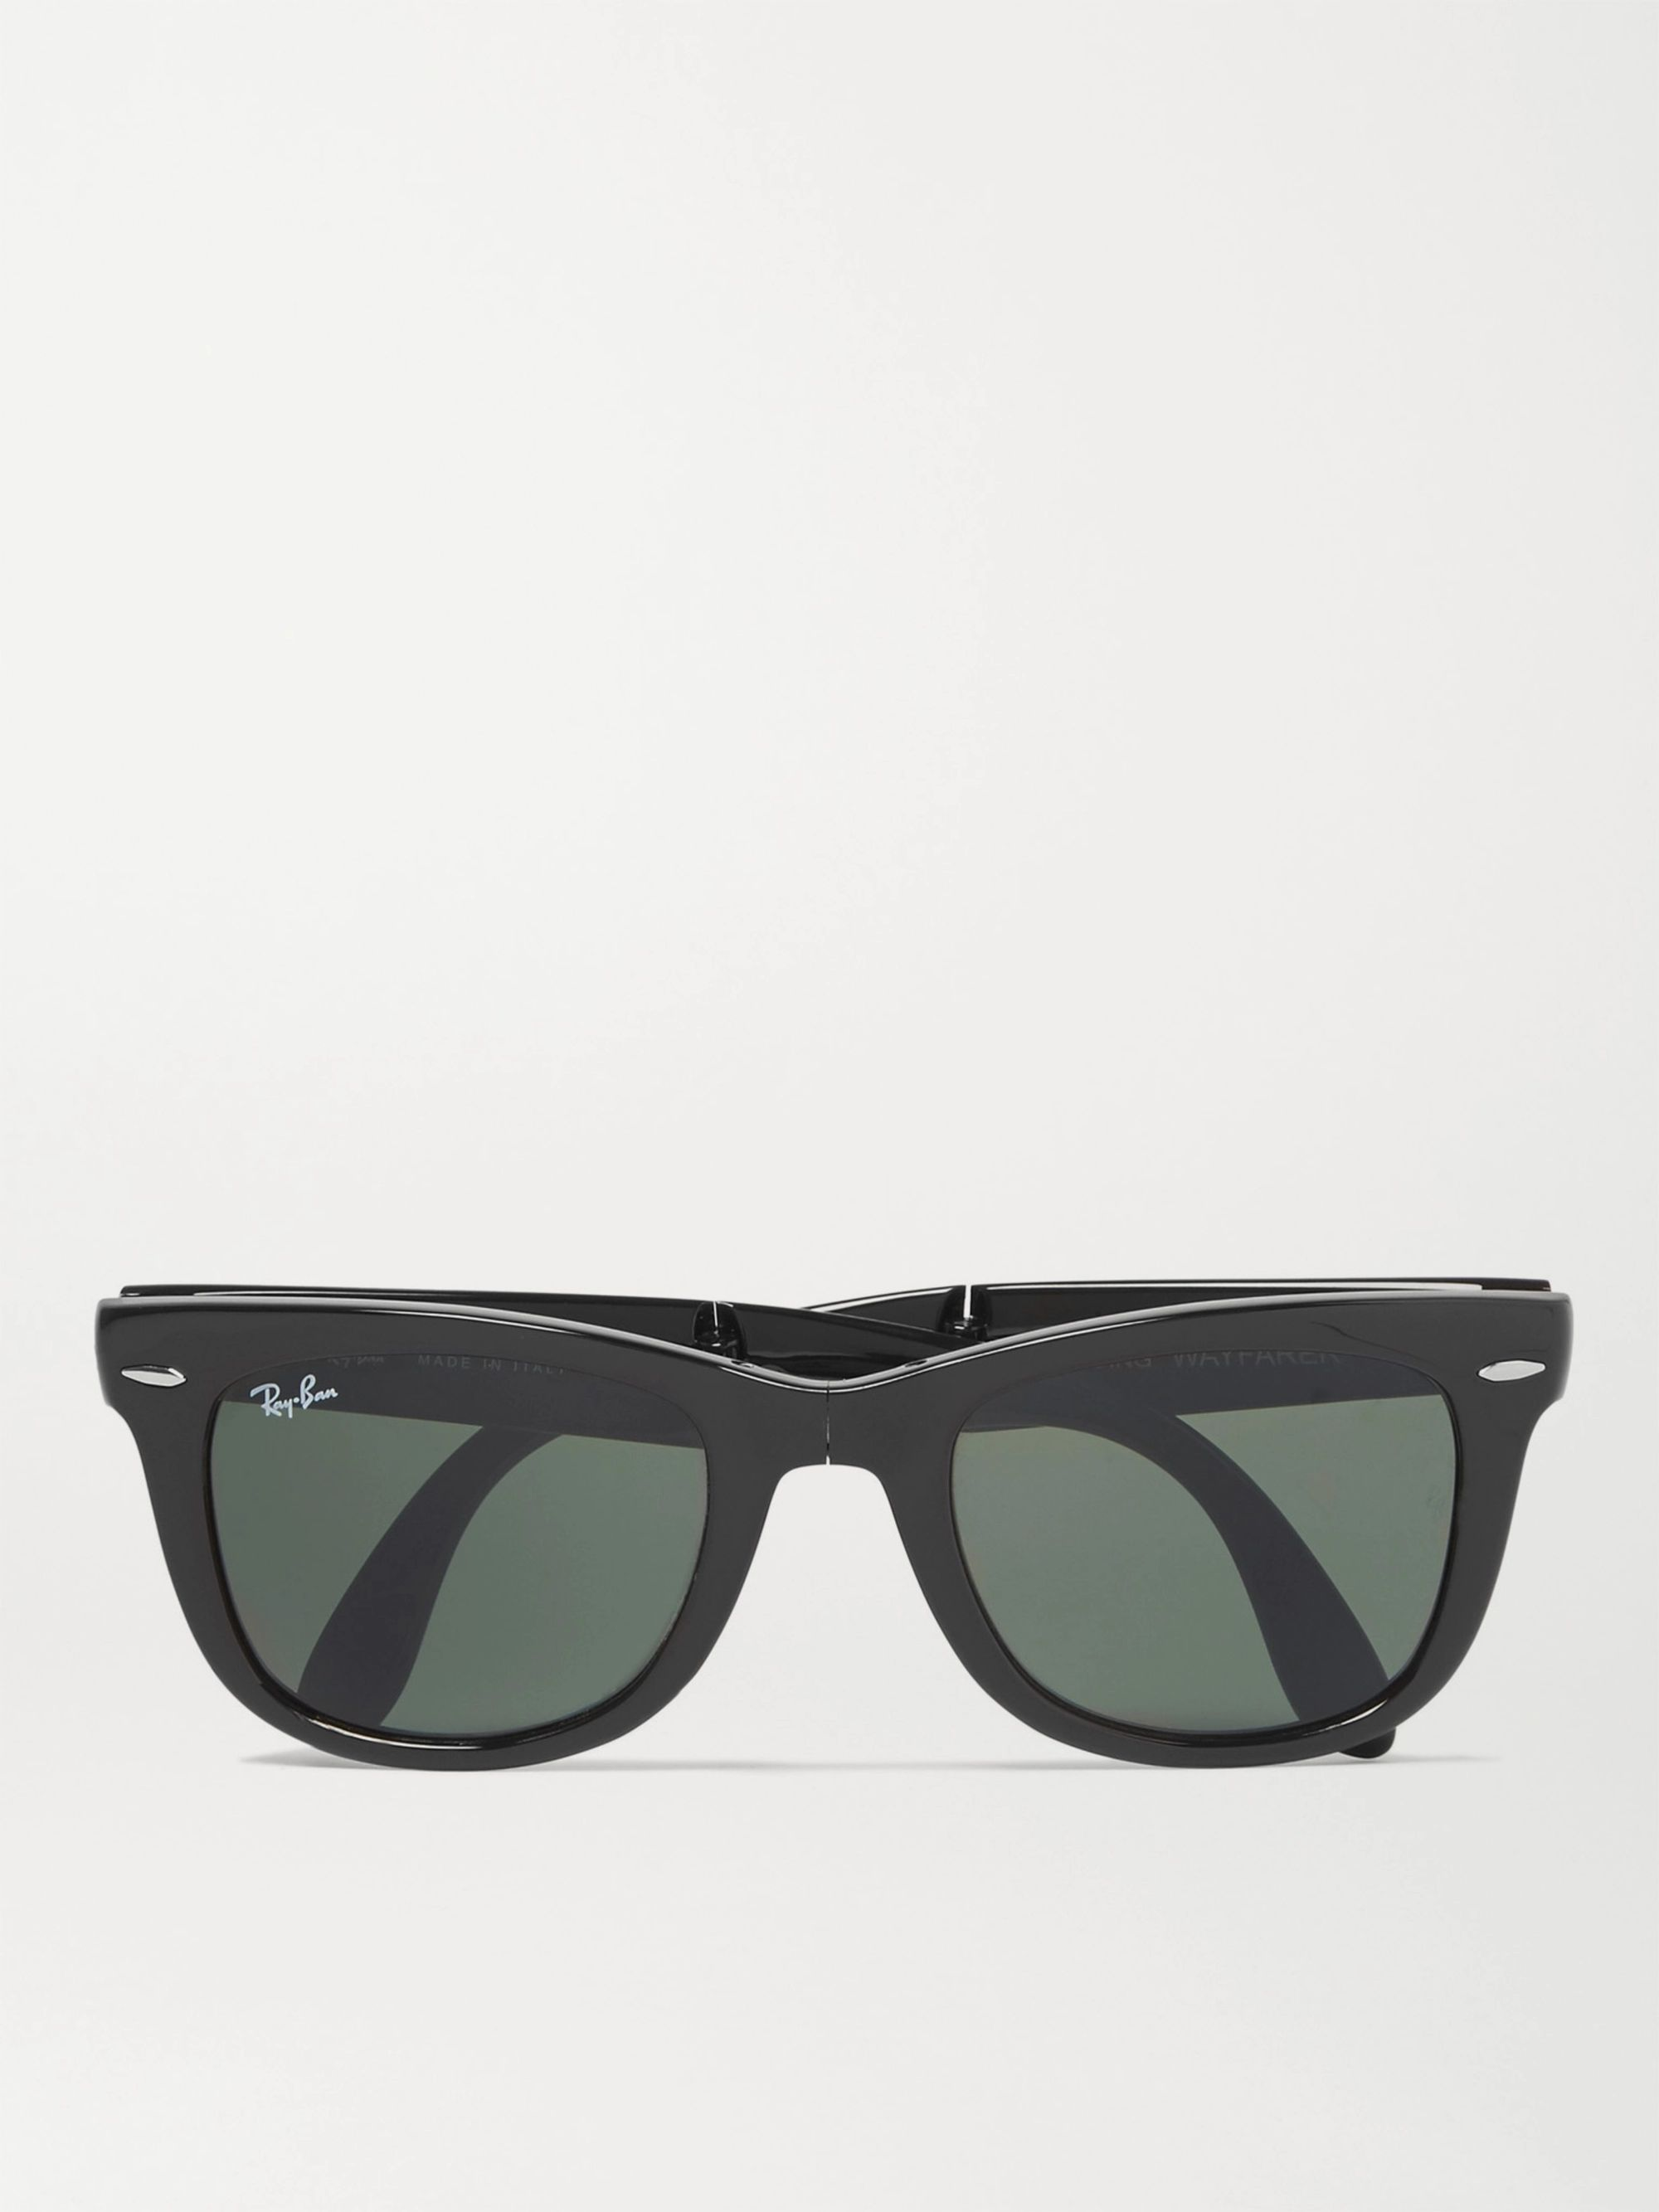 Wayfarer Folding Acetate Sunglasses